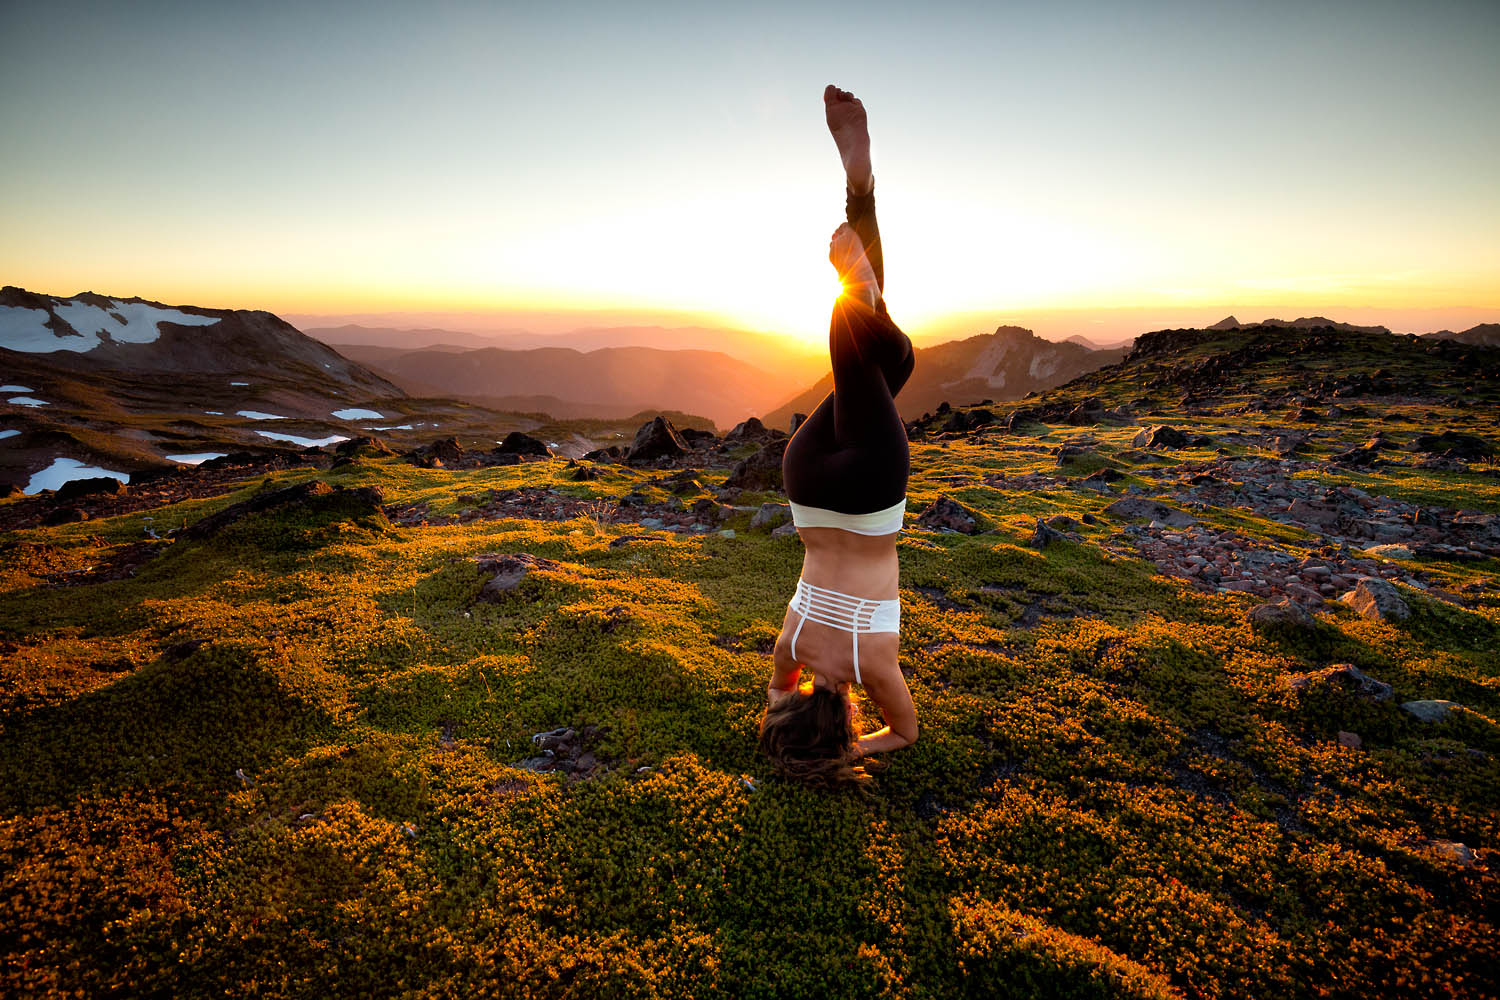 Lifestyle mary little practicing yoga in the wilderness of mt rainier national park